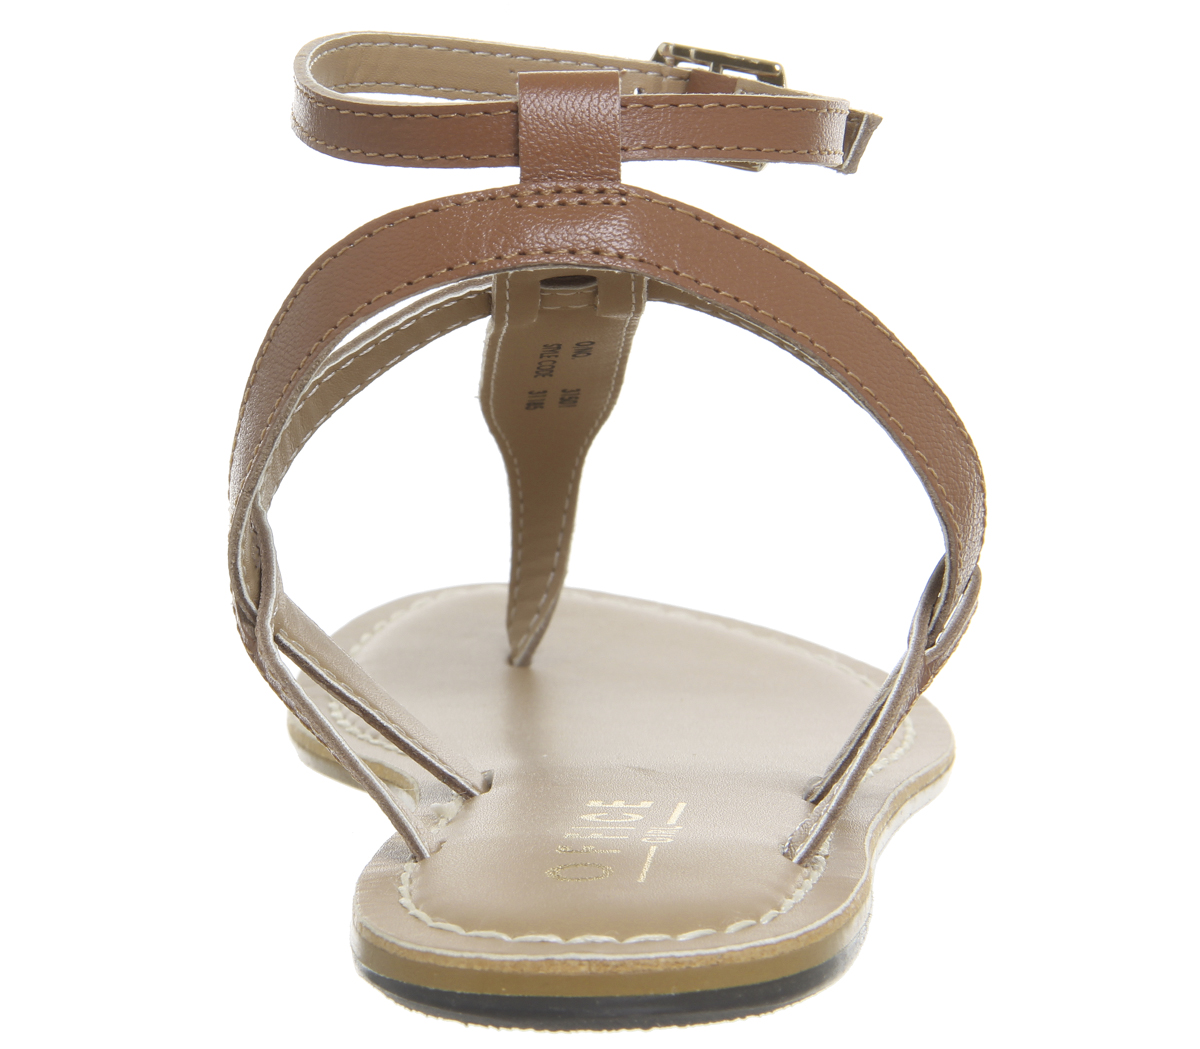 ae9daa7e1aa Sentinel Womens Office Salsa Ankle Strap Toe Post Sandals Tan Leather  Sandals